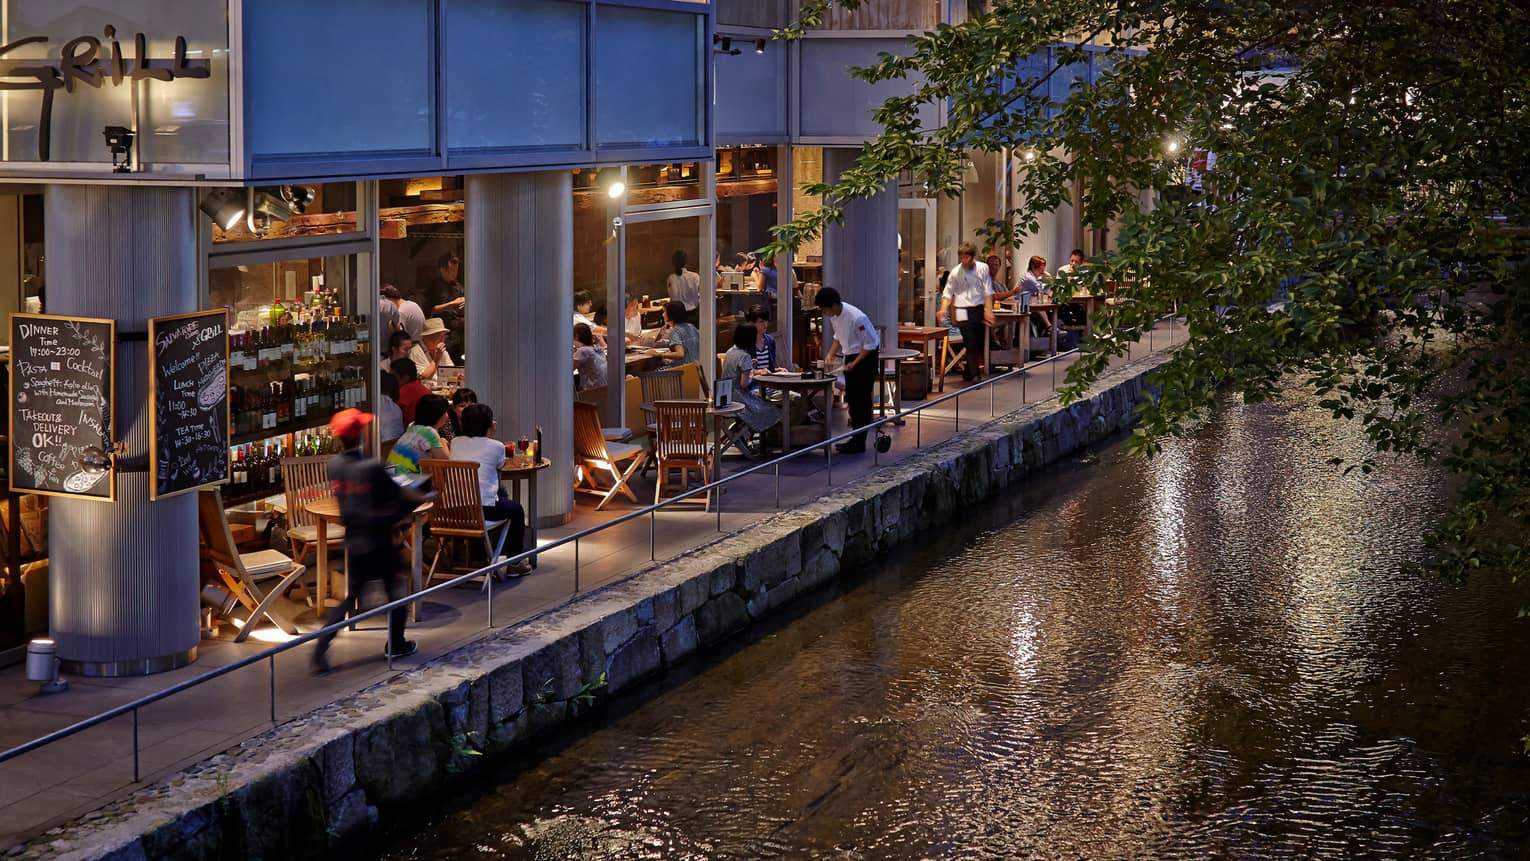 Downtown Kyoto shops, patios at night along Kamo-gawa River